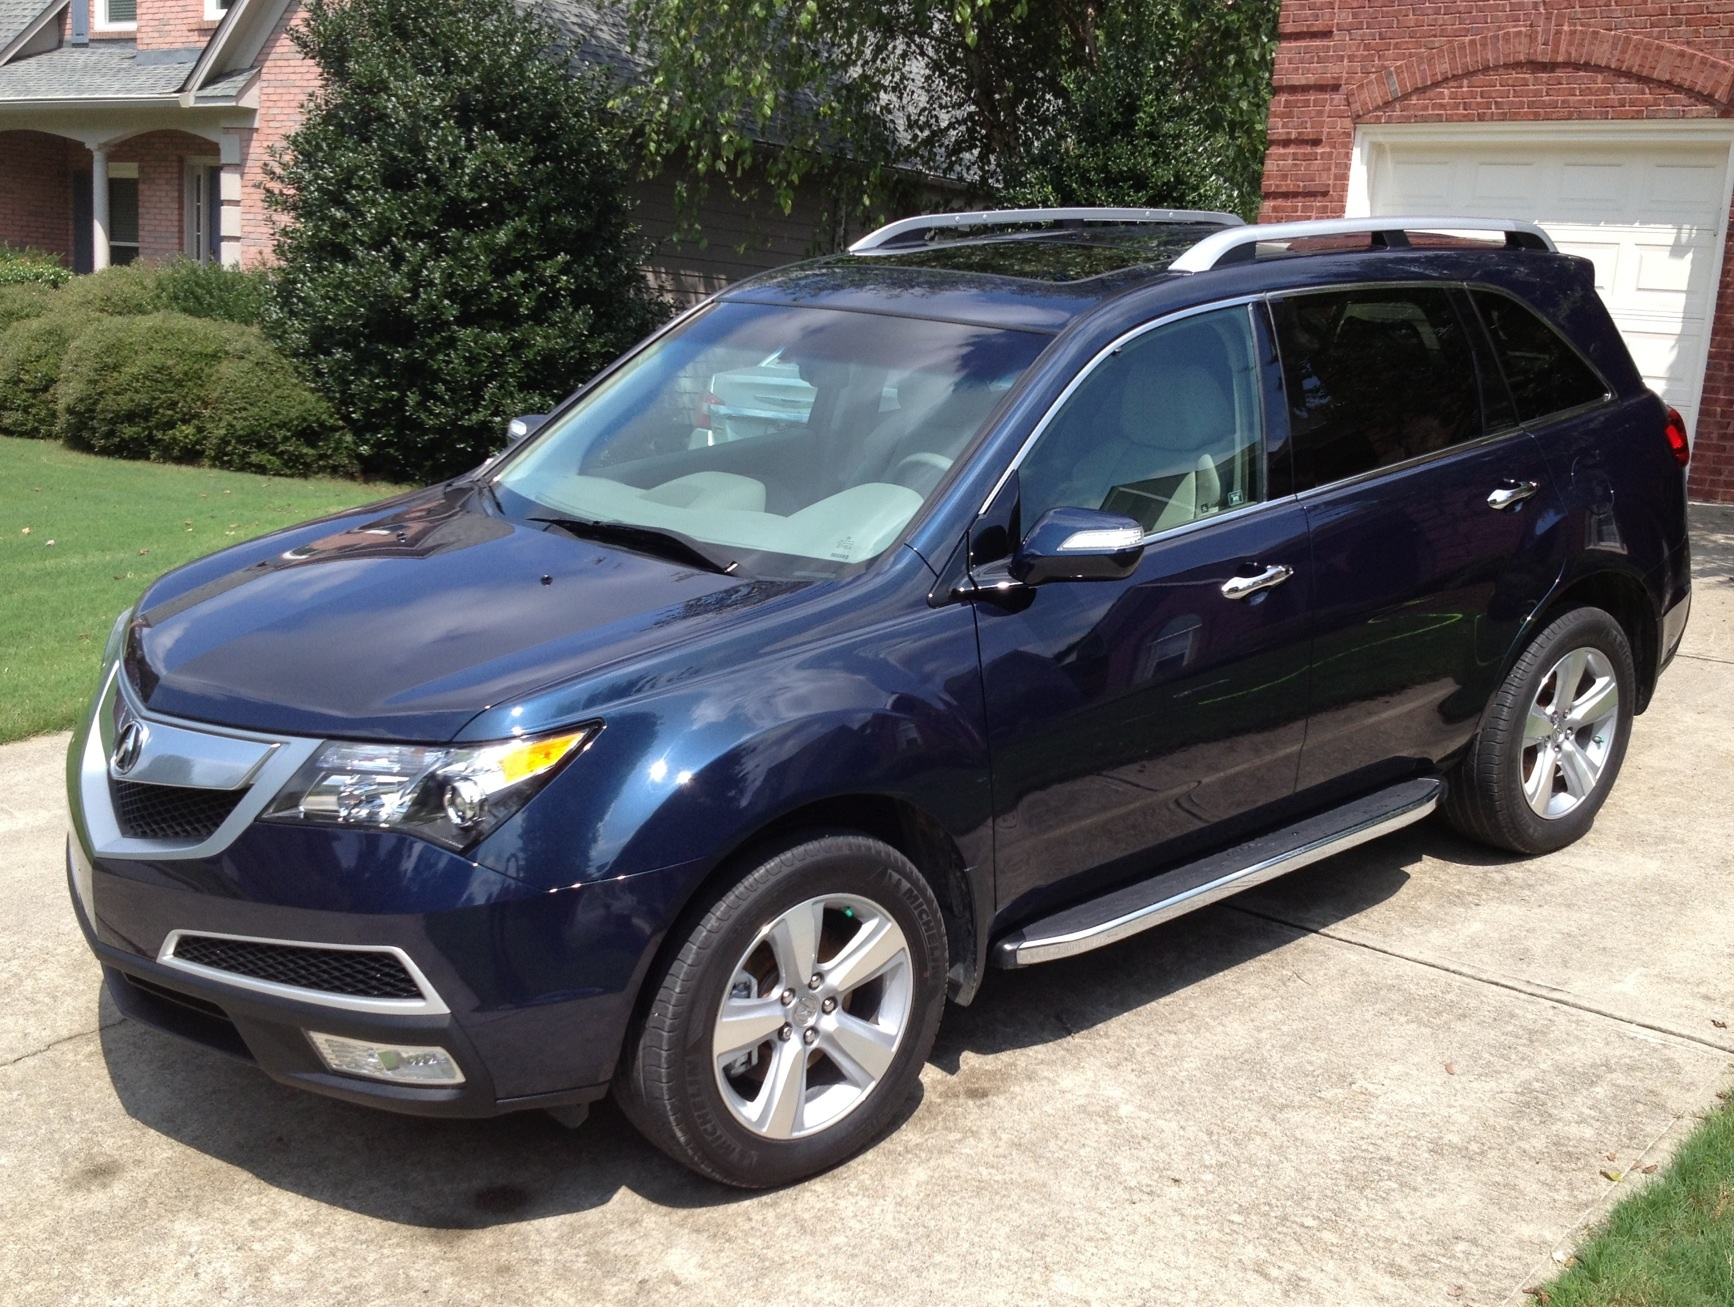 luxury advance spin unexpected mdx suv acura motor quick dsc an